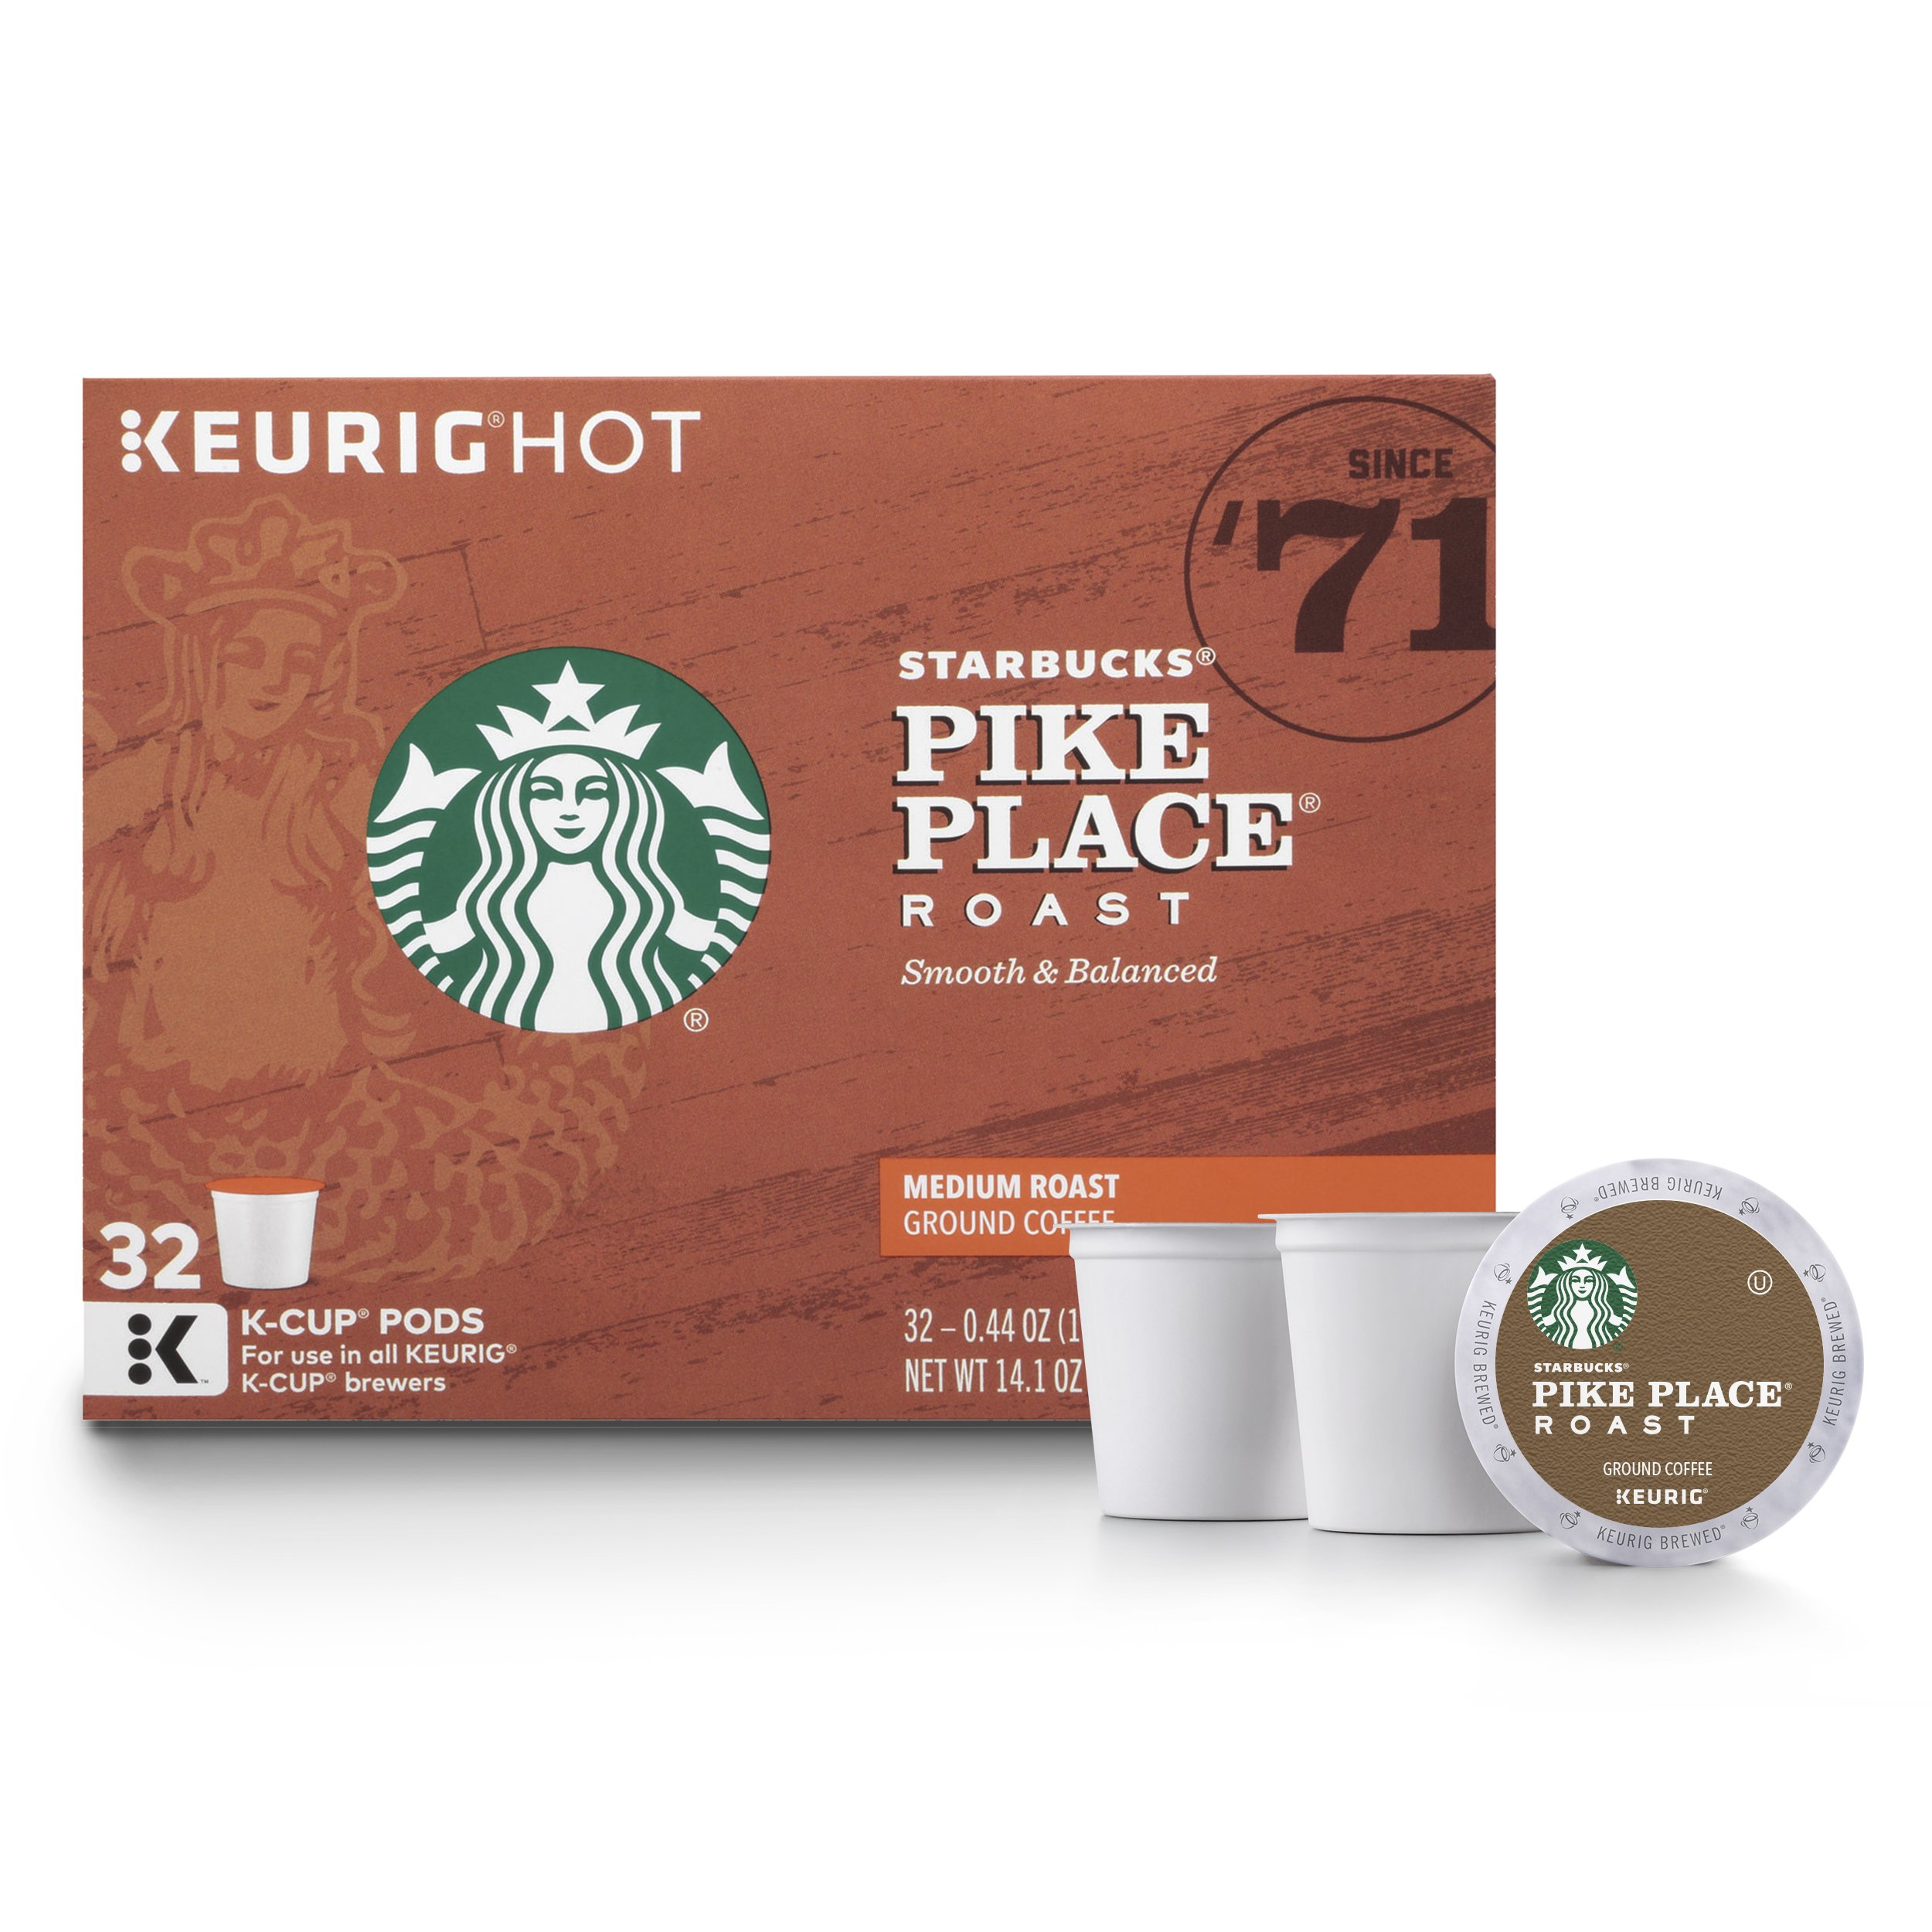 Starbucks Pike Place Roast Medium Roast Single Cup Coffee for Keurig Brewers, 1 box of 32 (32 total K-Cup pods) by Starbucks